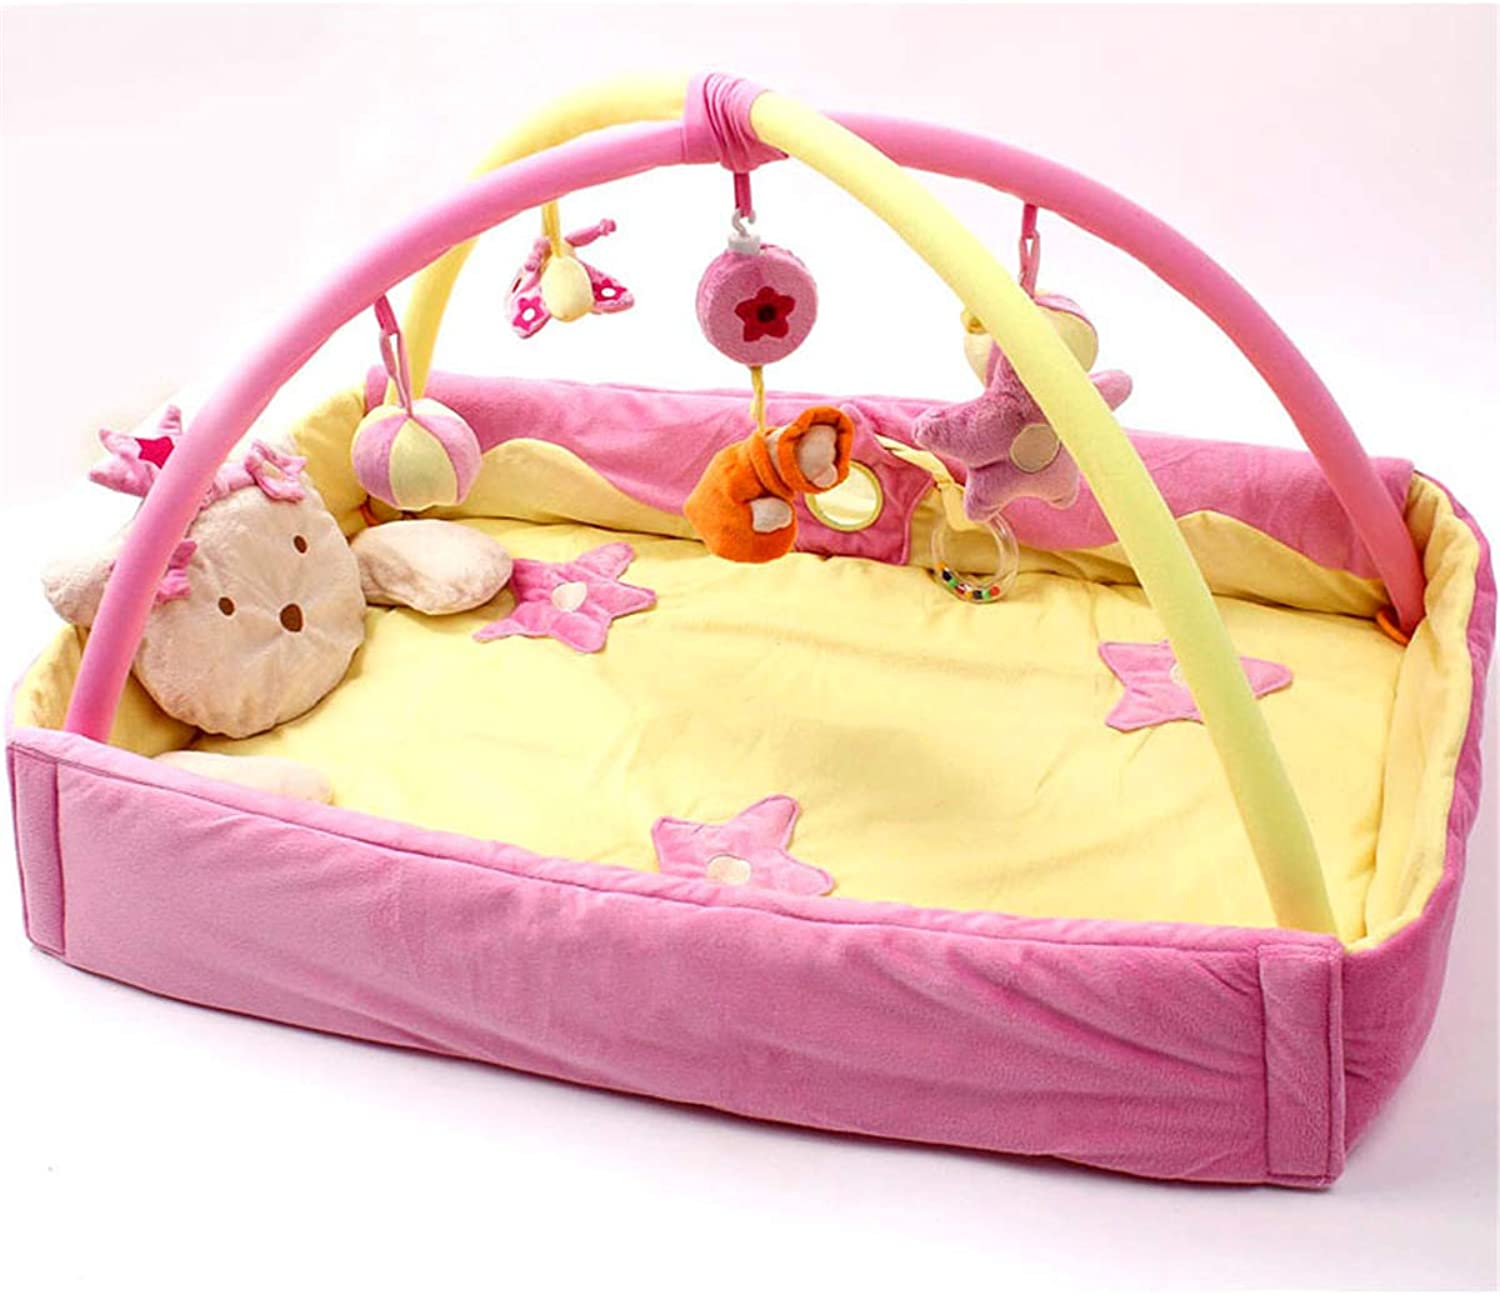 Baby Play Mat Musical Activity Gym New Born,Pink,L